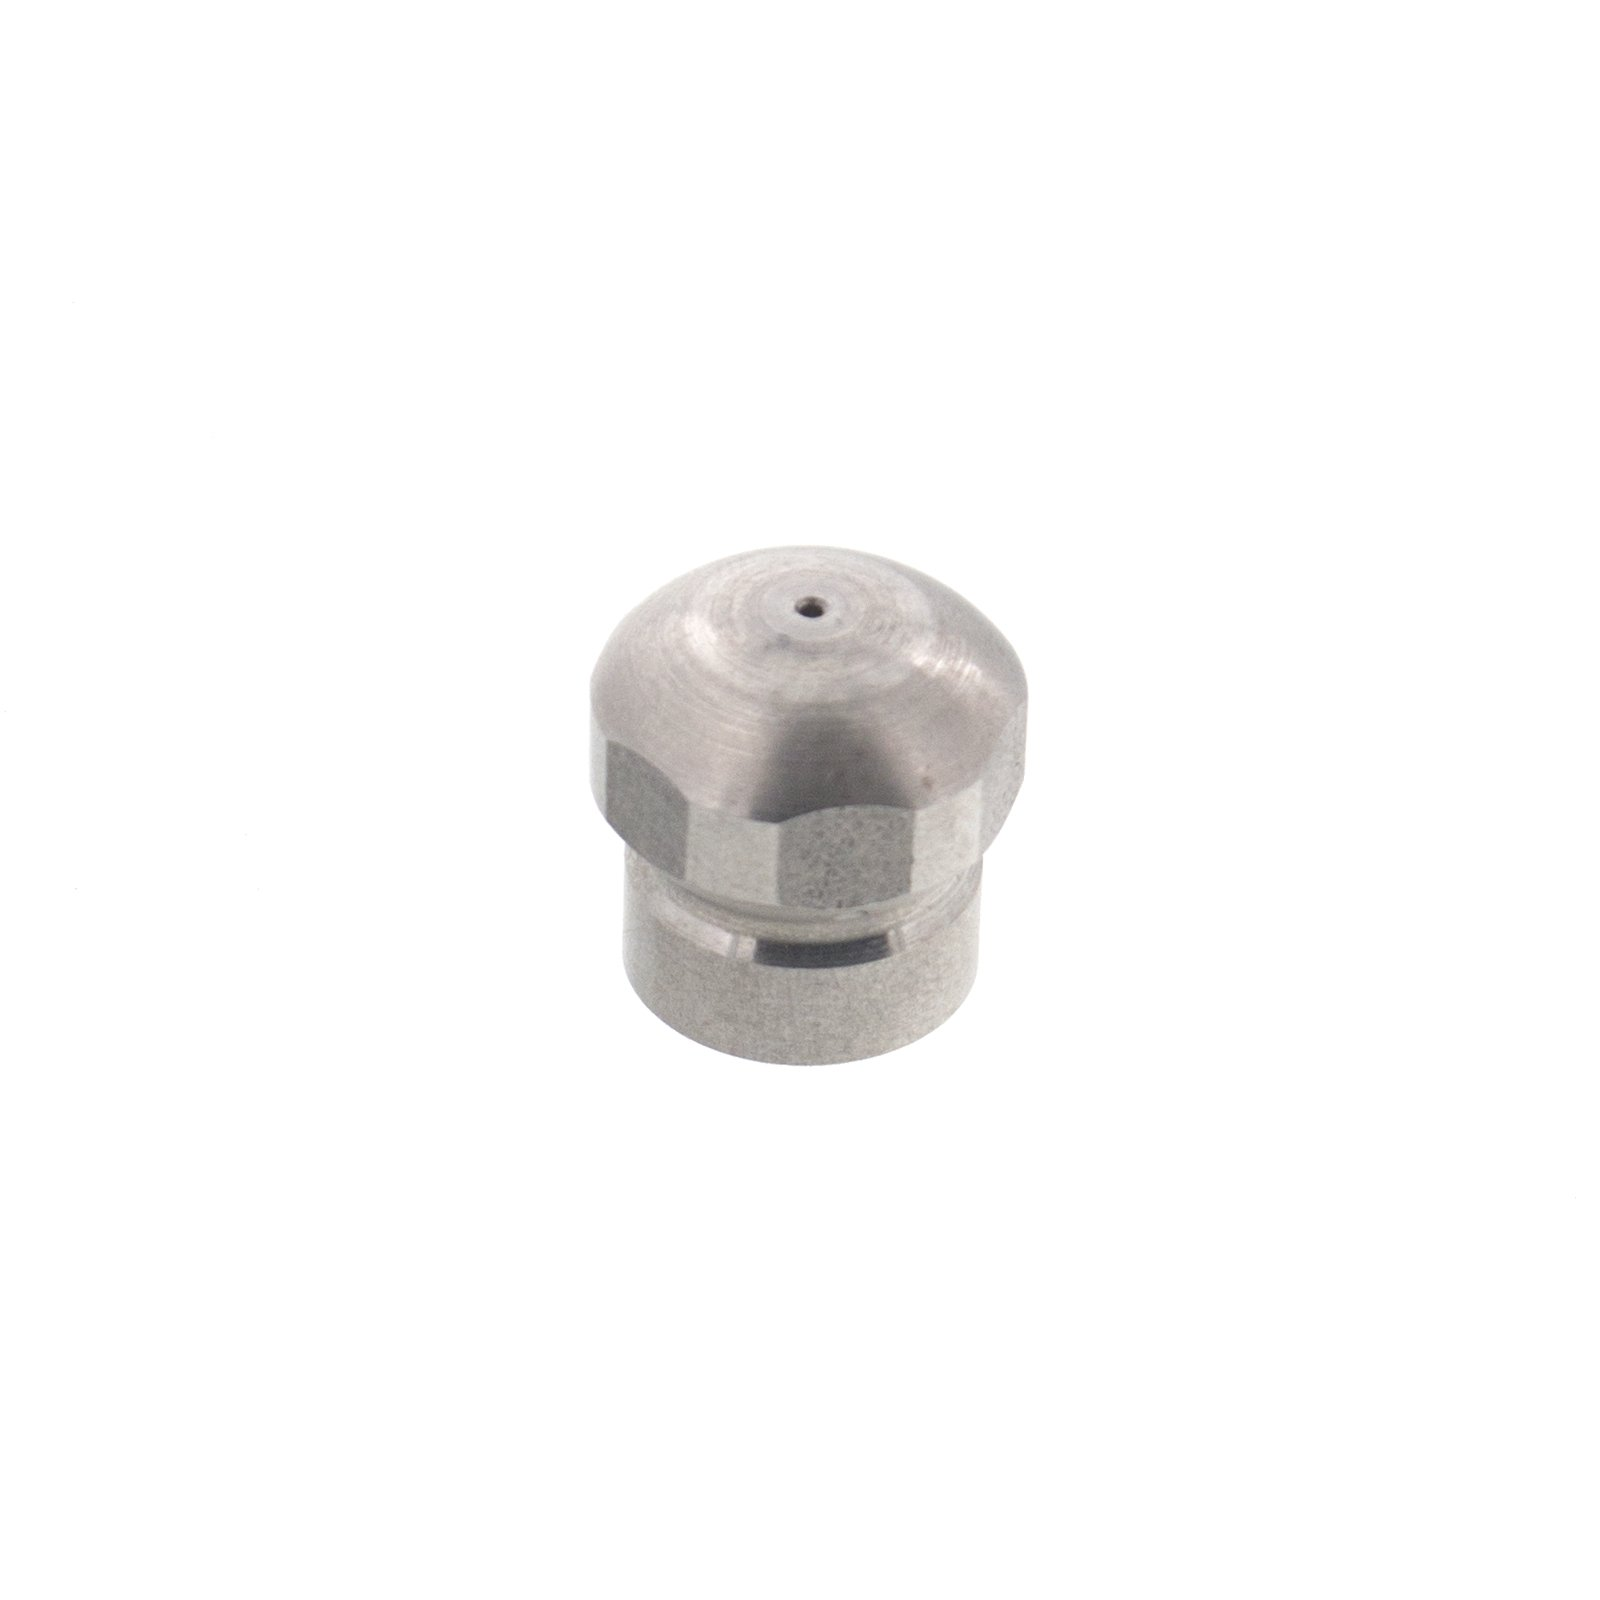 Erie Tools Button Nose 1/8 Sewer Jetter Drain Cleaning Nozzle, 4.0 Orifice Size, 4000 PSI, Max Temp 300 F